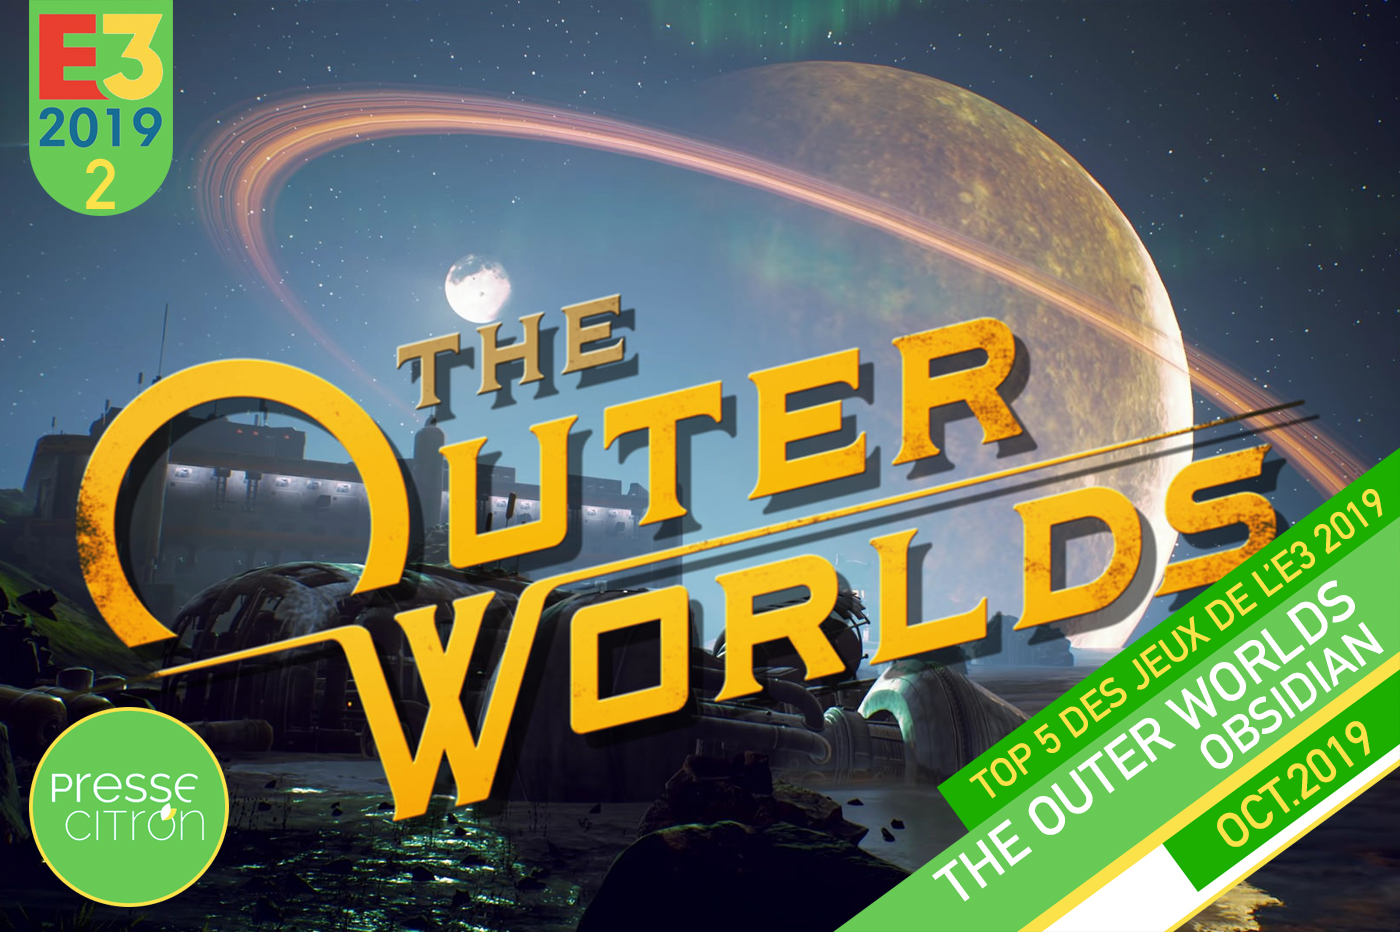 Top 5 E3 2019 Presse-Citron The Outer Worlds